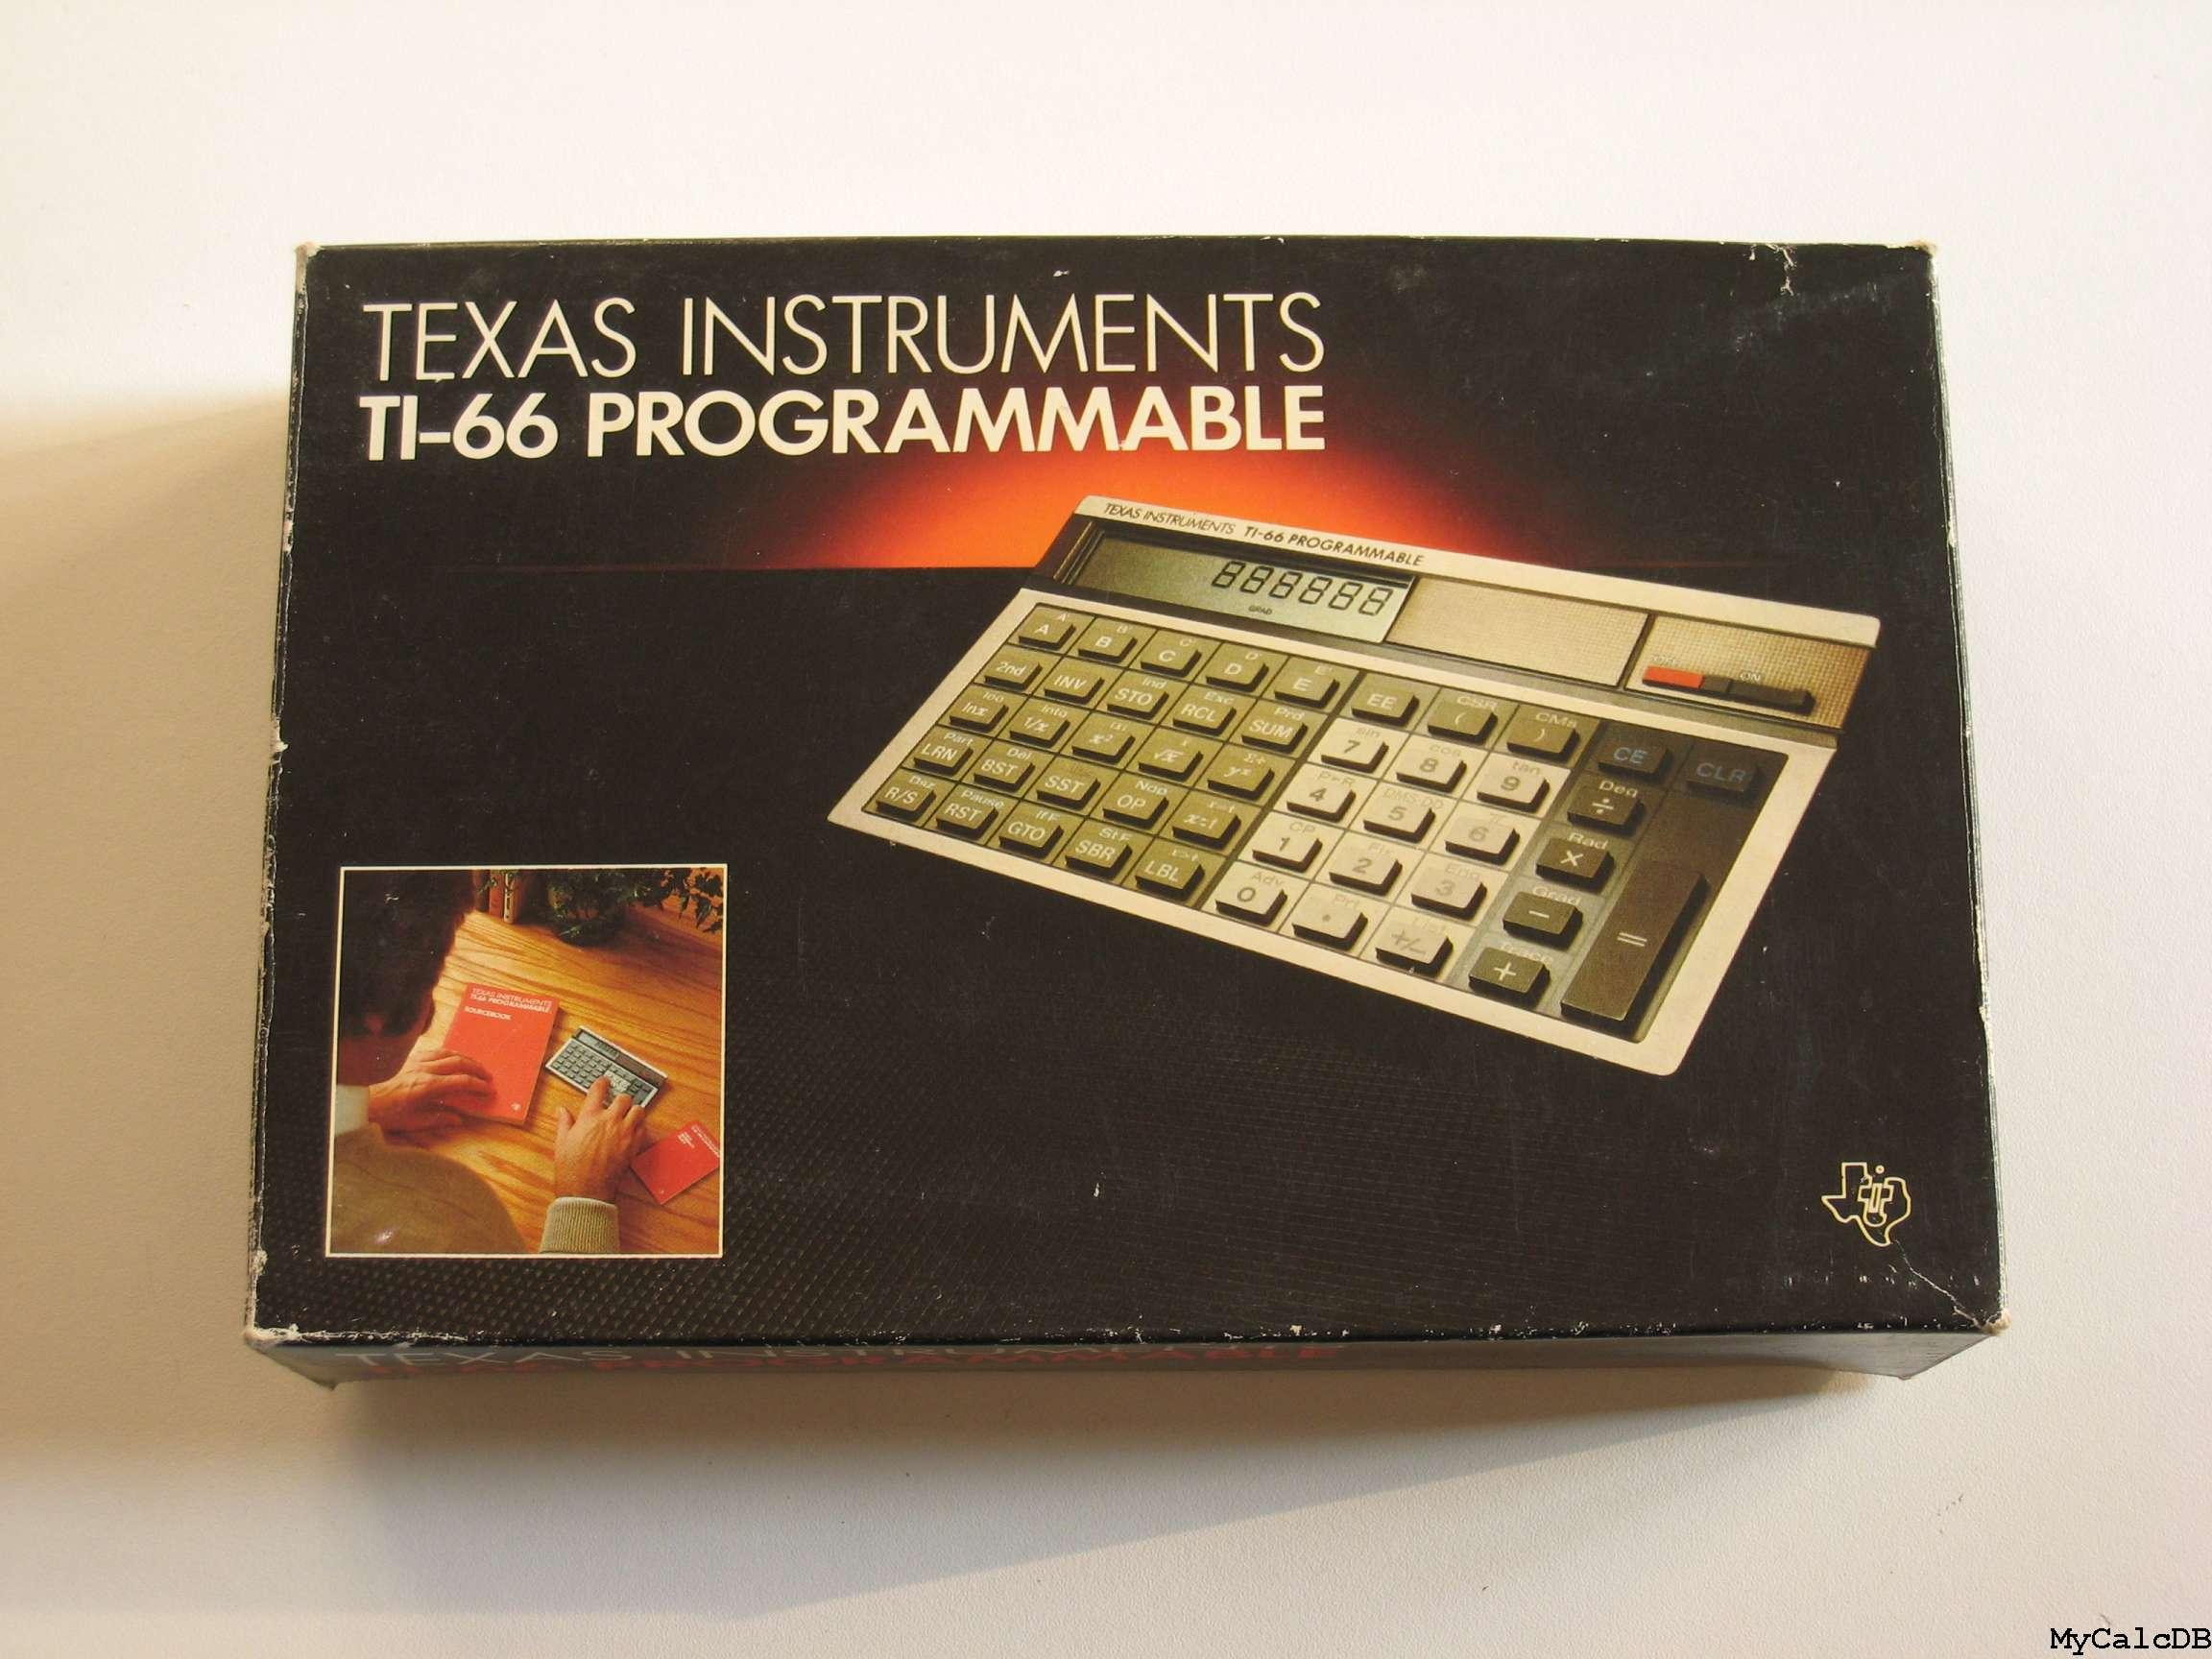 Texas Instruments TI-66 PROGRAMMABLE